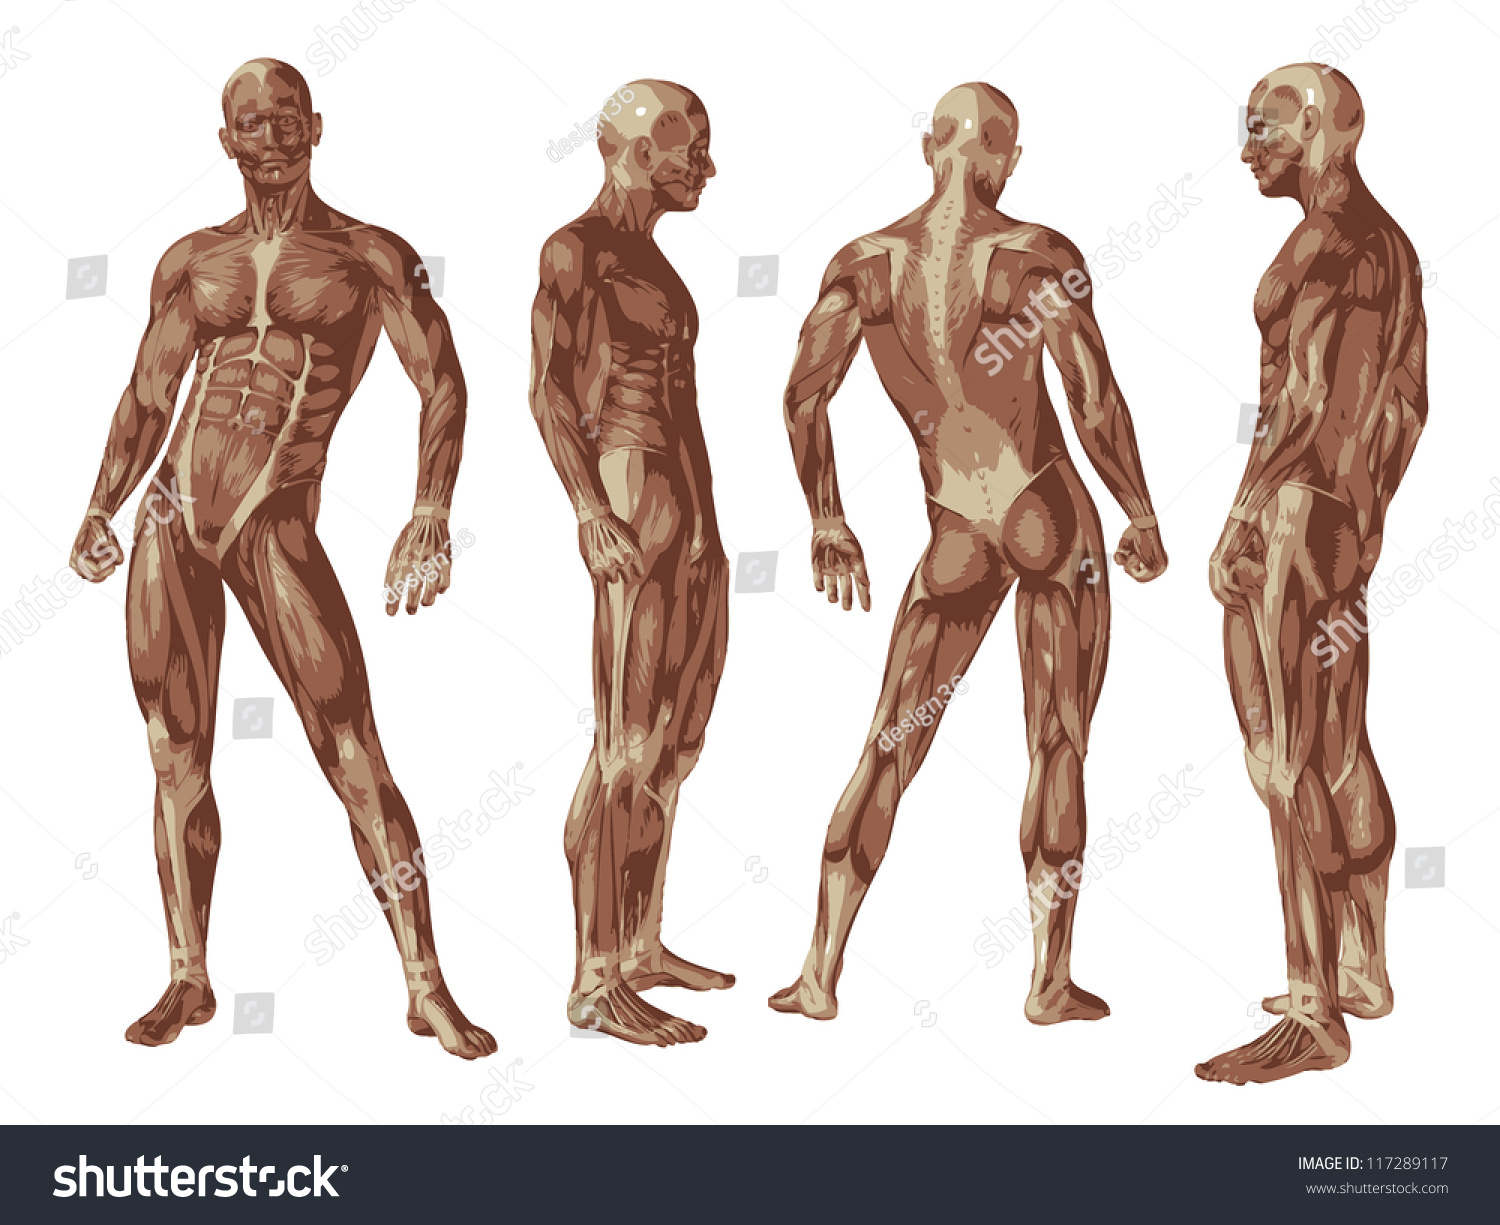 High Resolution Concept Conceptual Human Man Stock Illustration